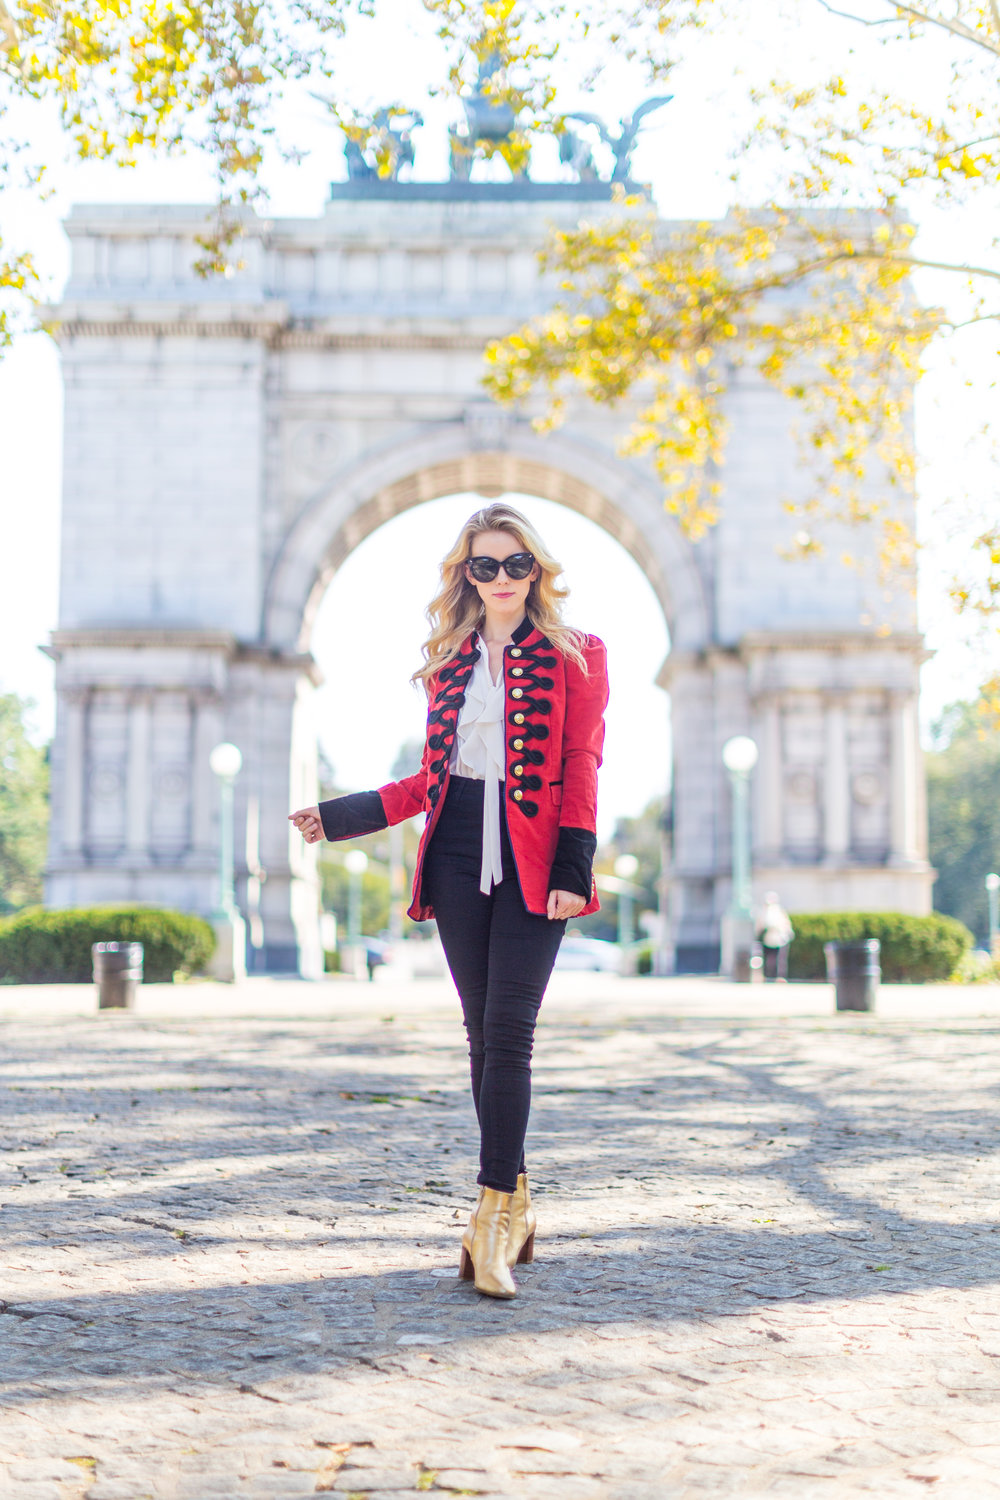 Fall Fashion Red Band Jacket Trendy.jpg